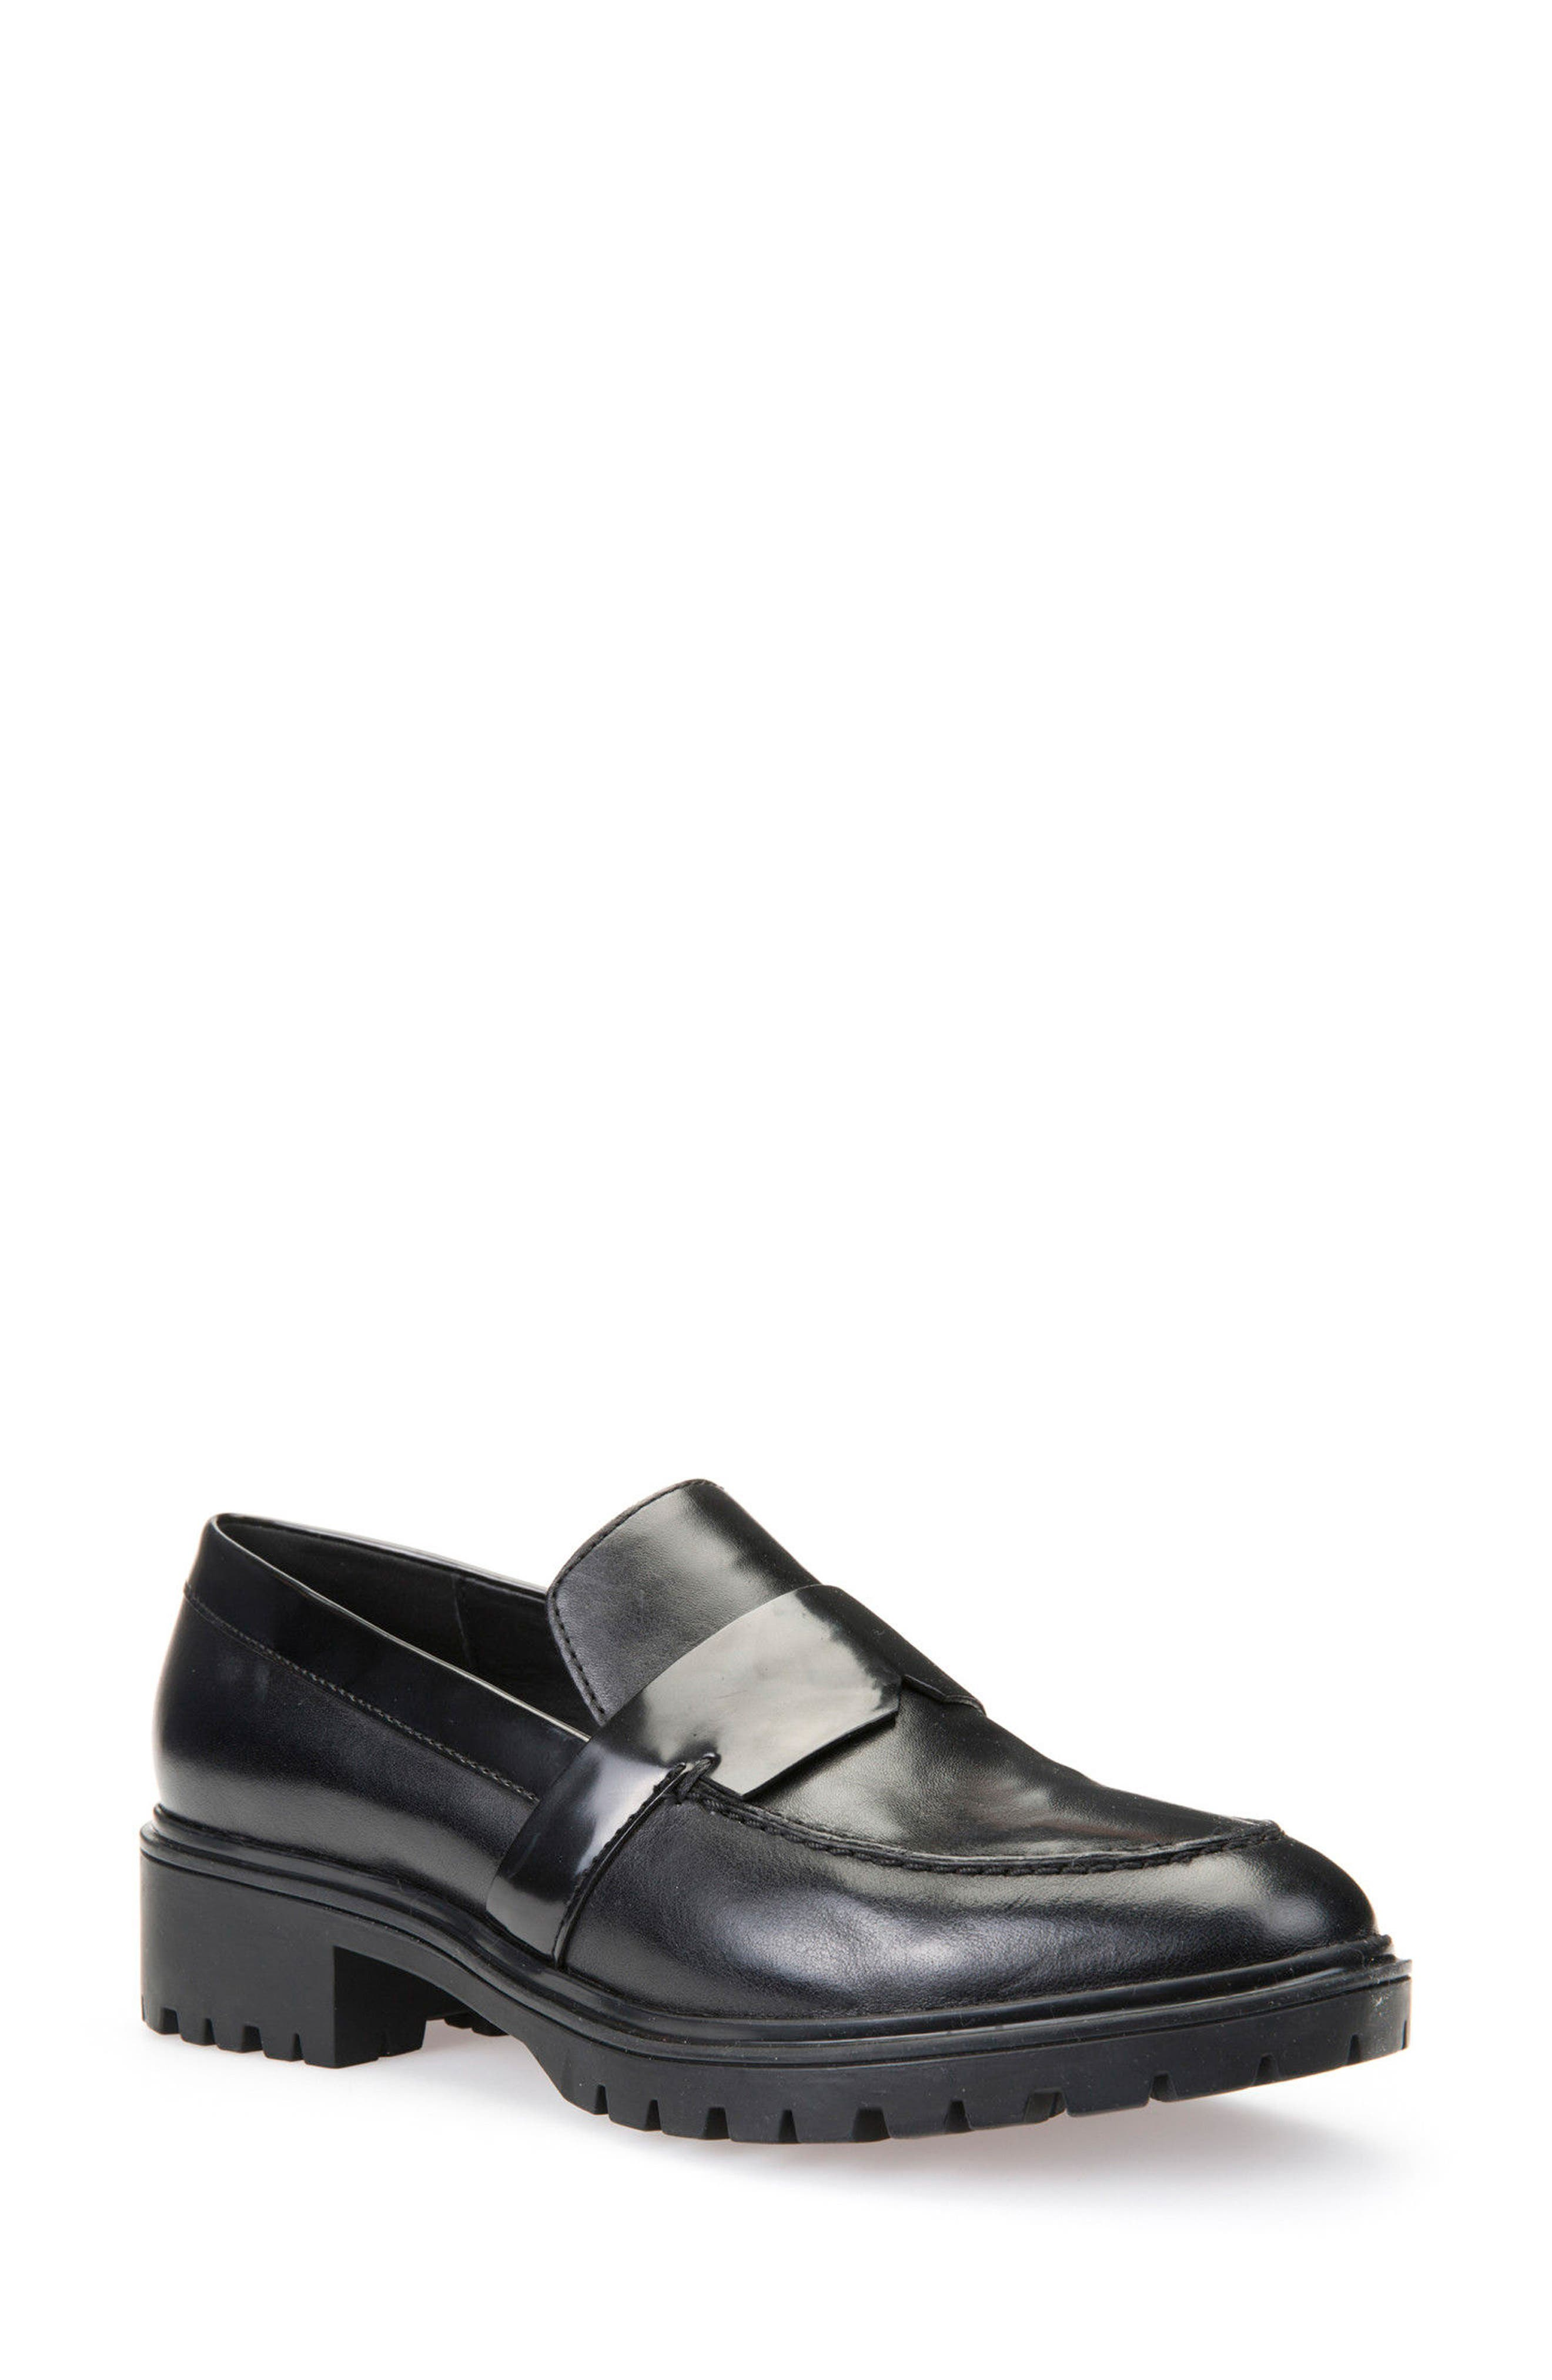 Alternate Image 1 Selected - Geox Peaceful Loafer Pump (Women)